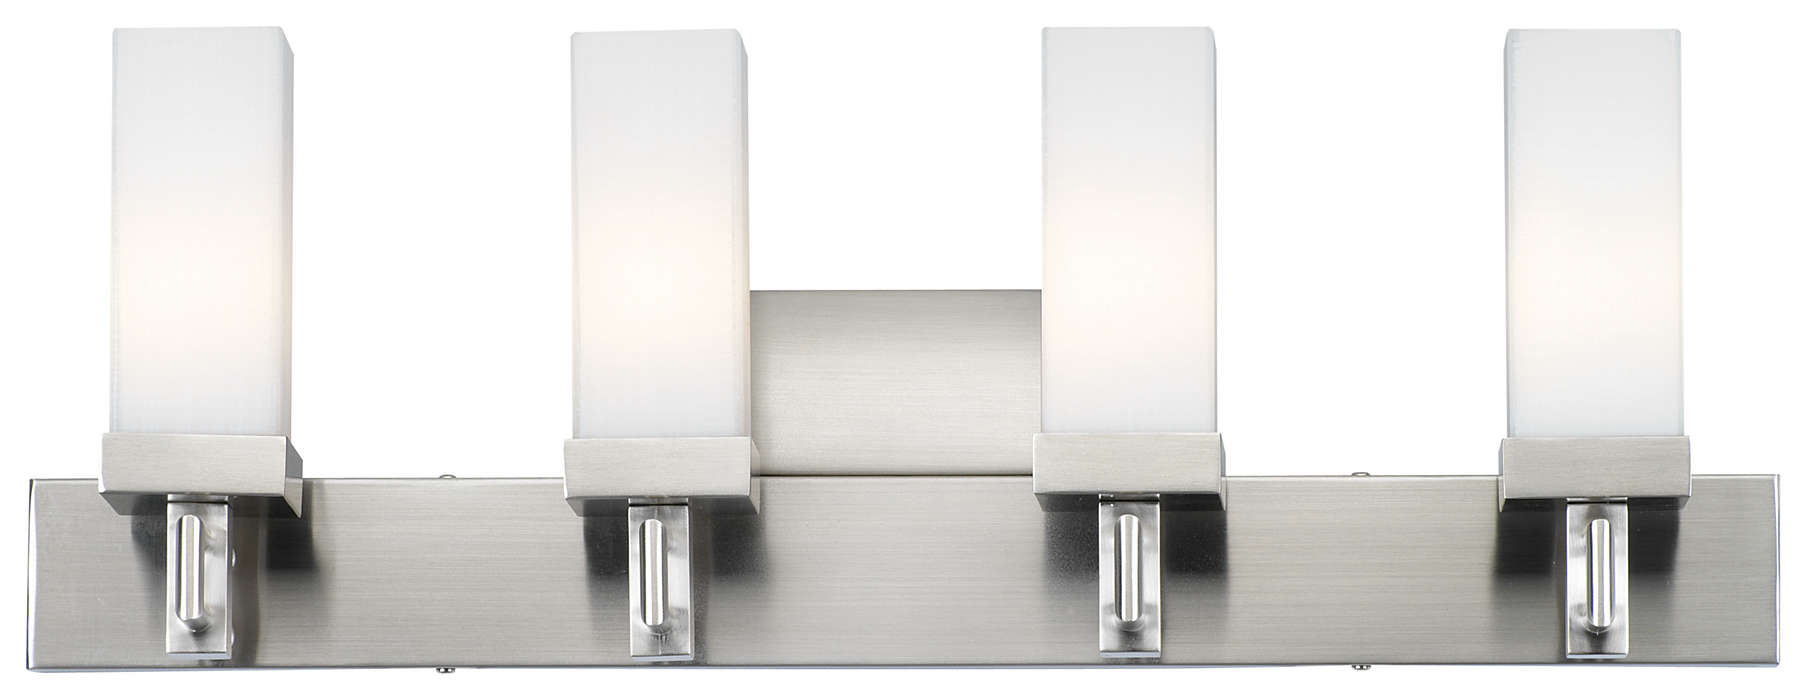 Casa 4-light Bath in Satin Nickel finish